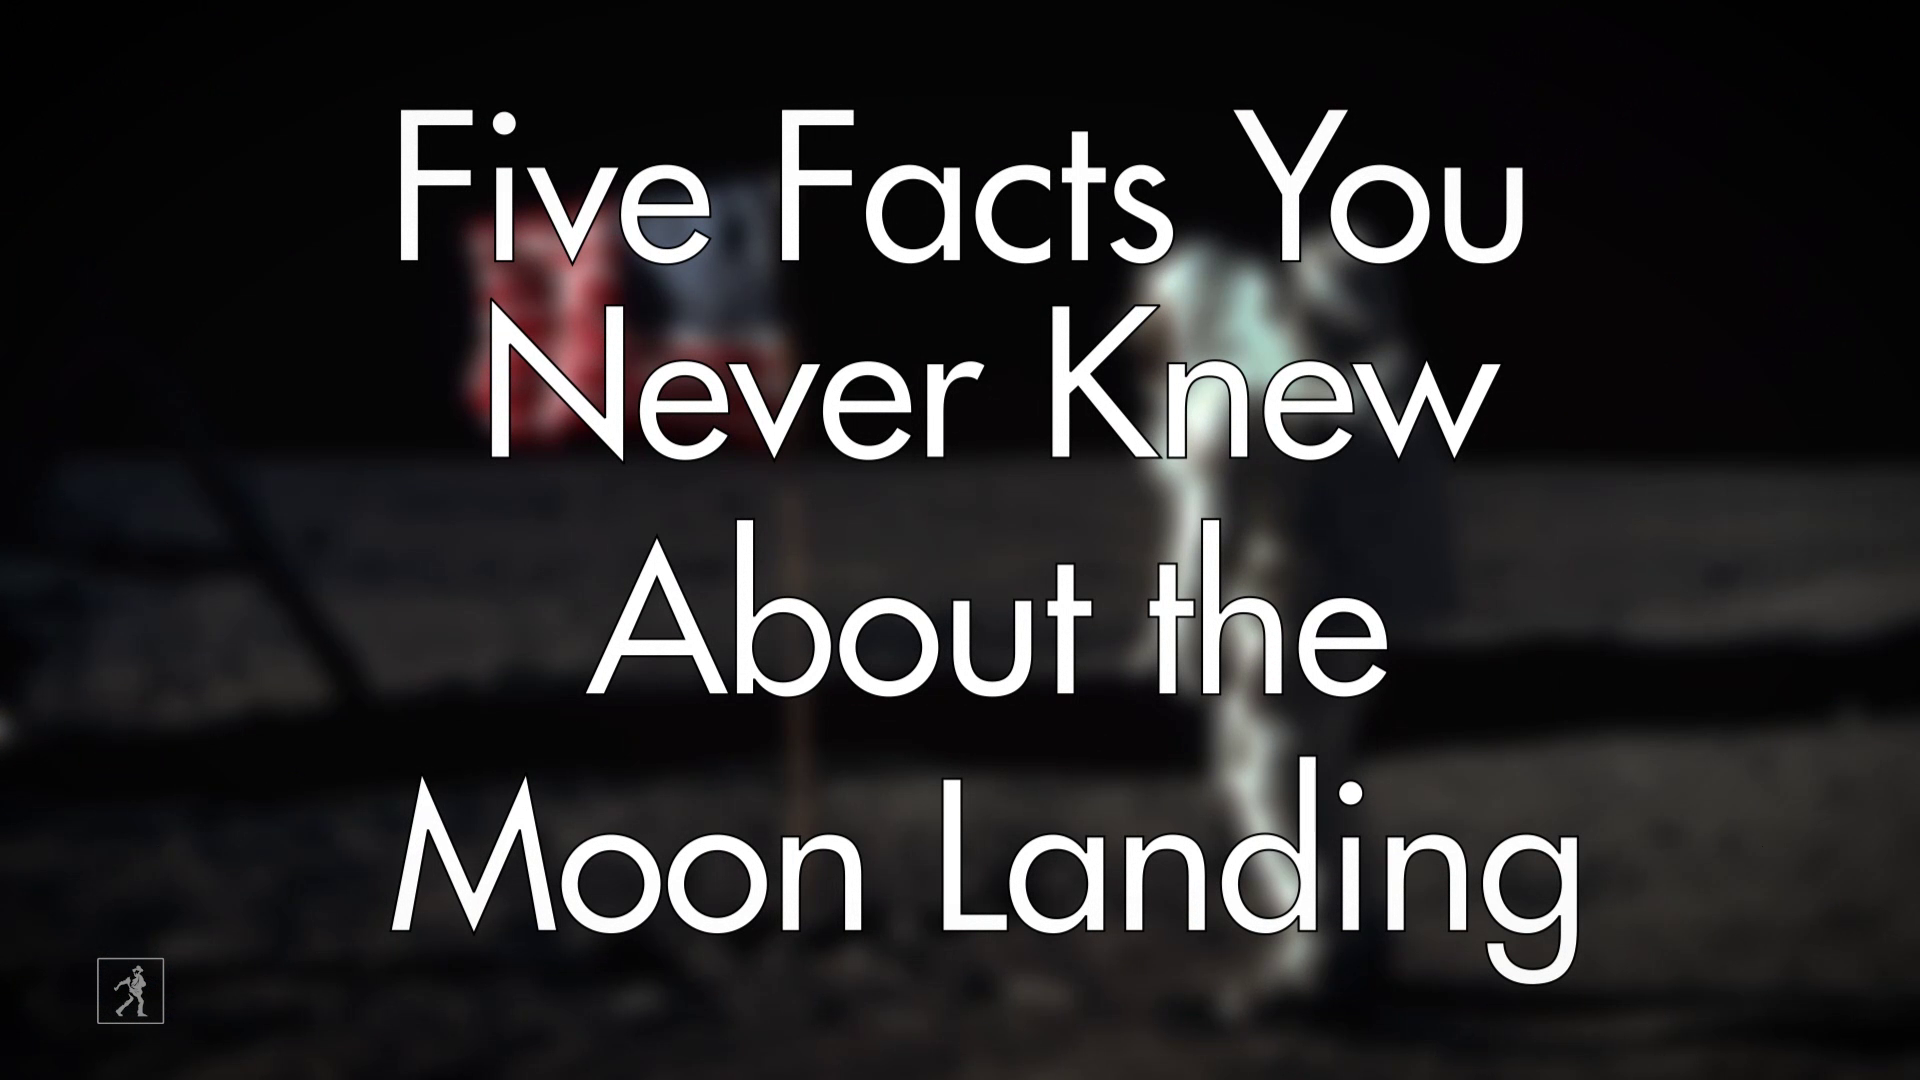 Five Facts You Never Knew About the Moon Landing